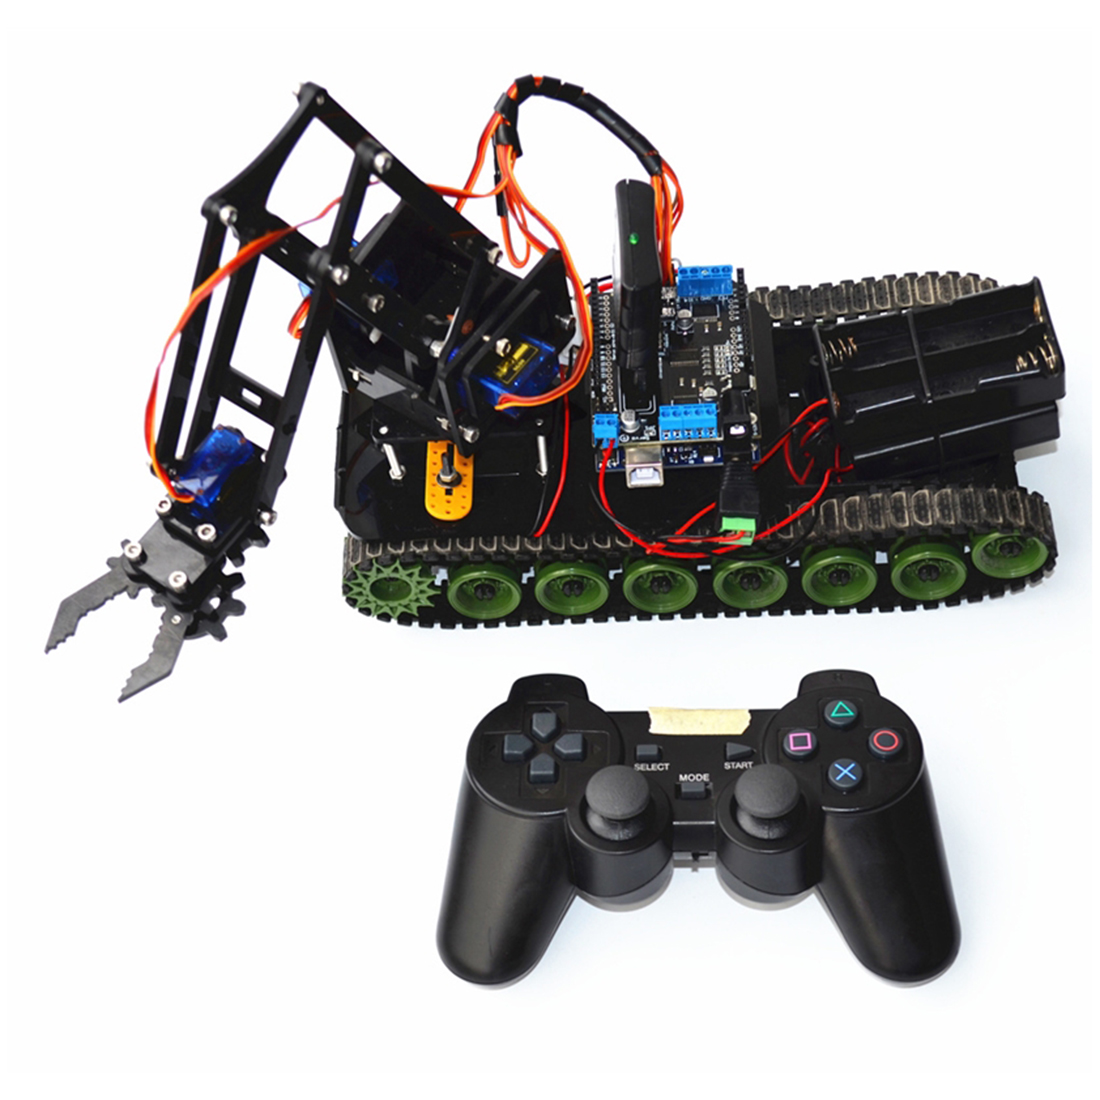 DIY Programmable Tank Mechanical Arm Robot Kit For Arduino Model Educational Toy Gift For Children Kids Adults Discovery Toys